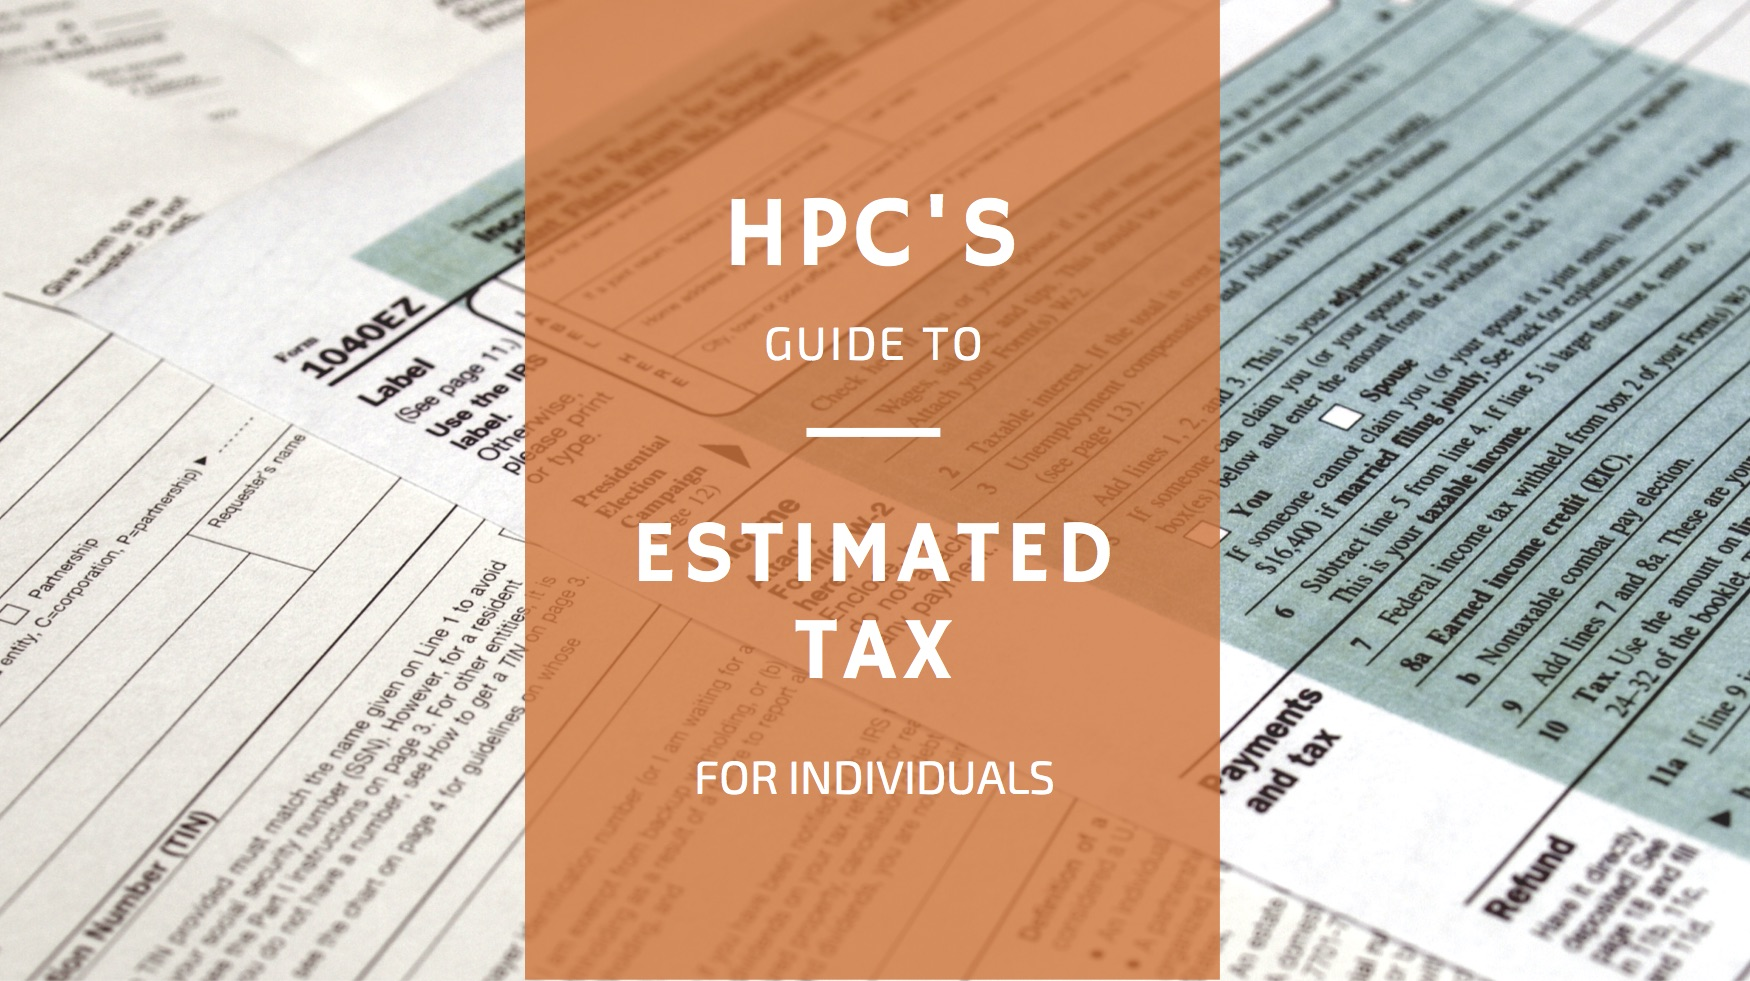 HPC's Guide to Estimated Tax